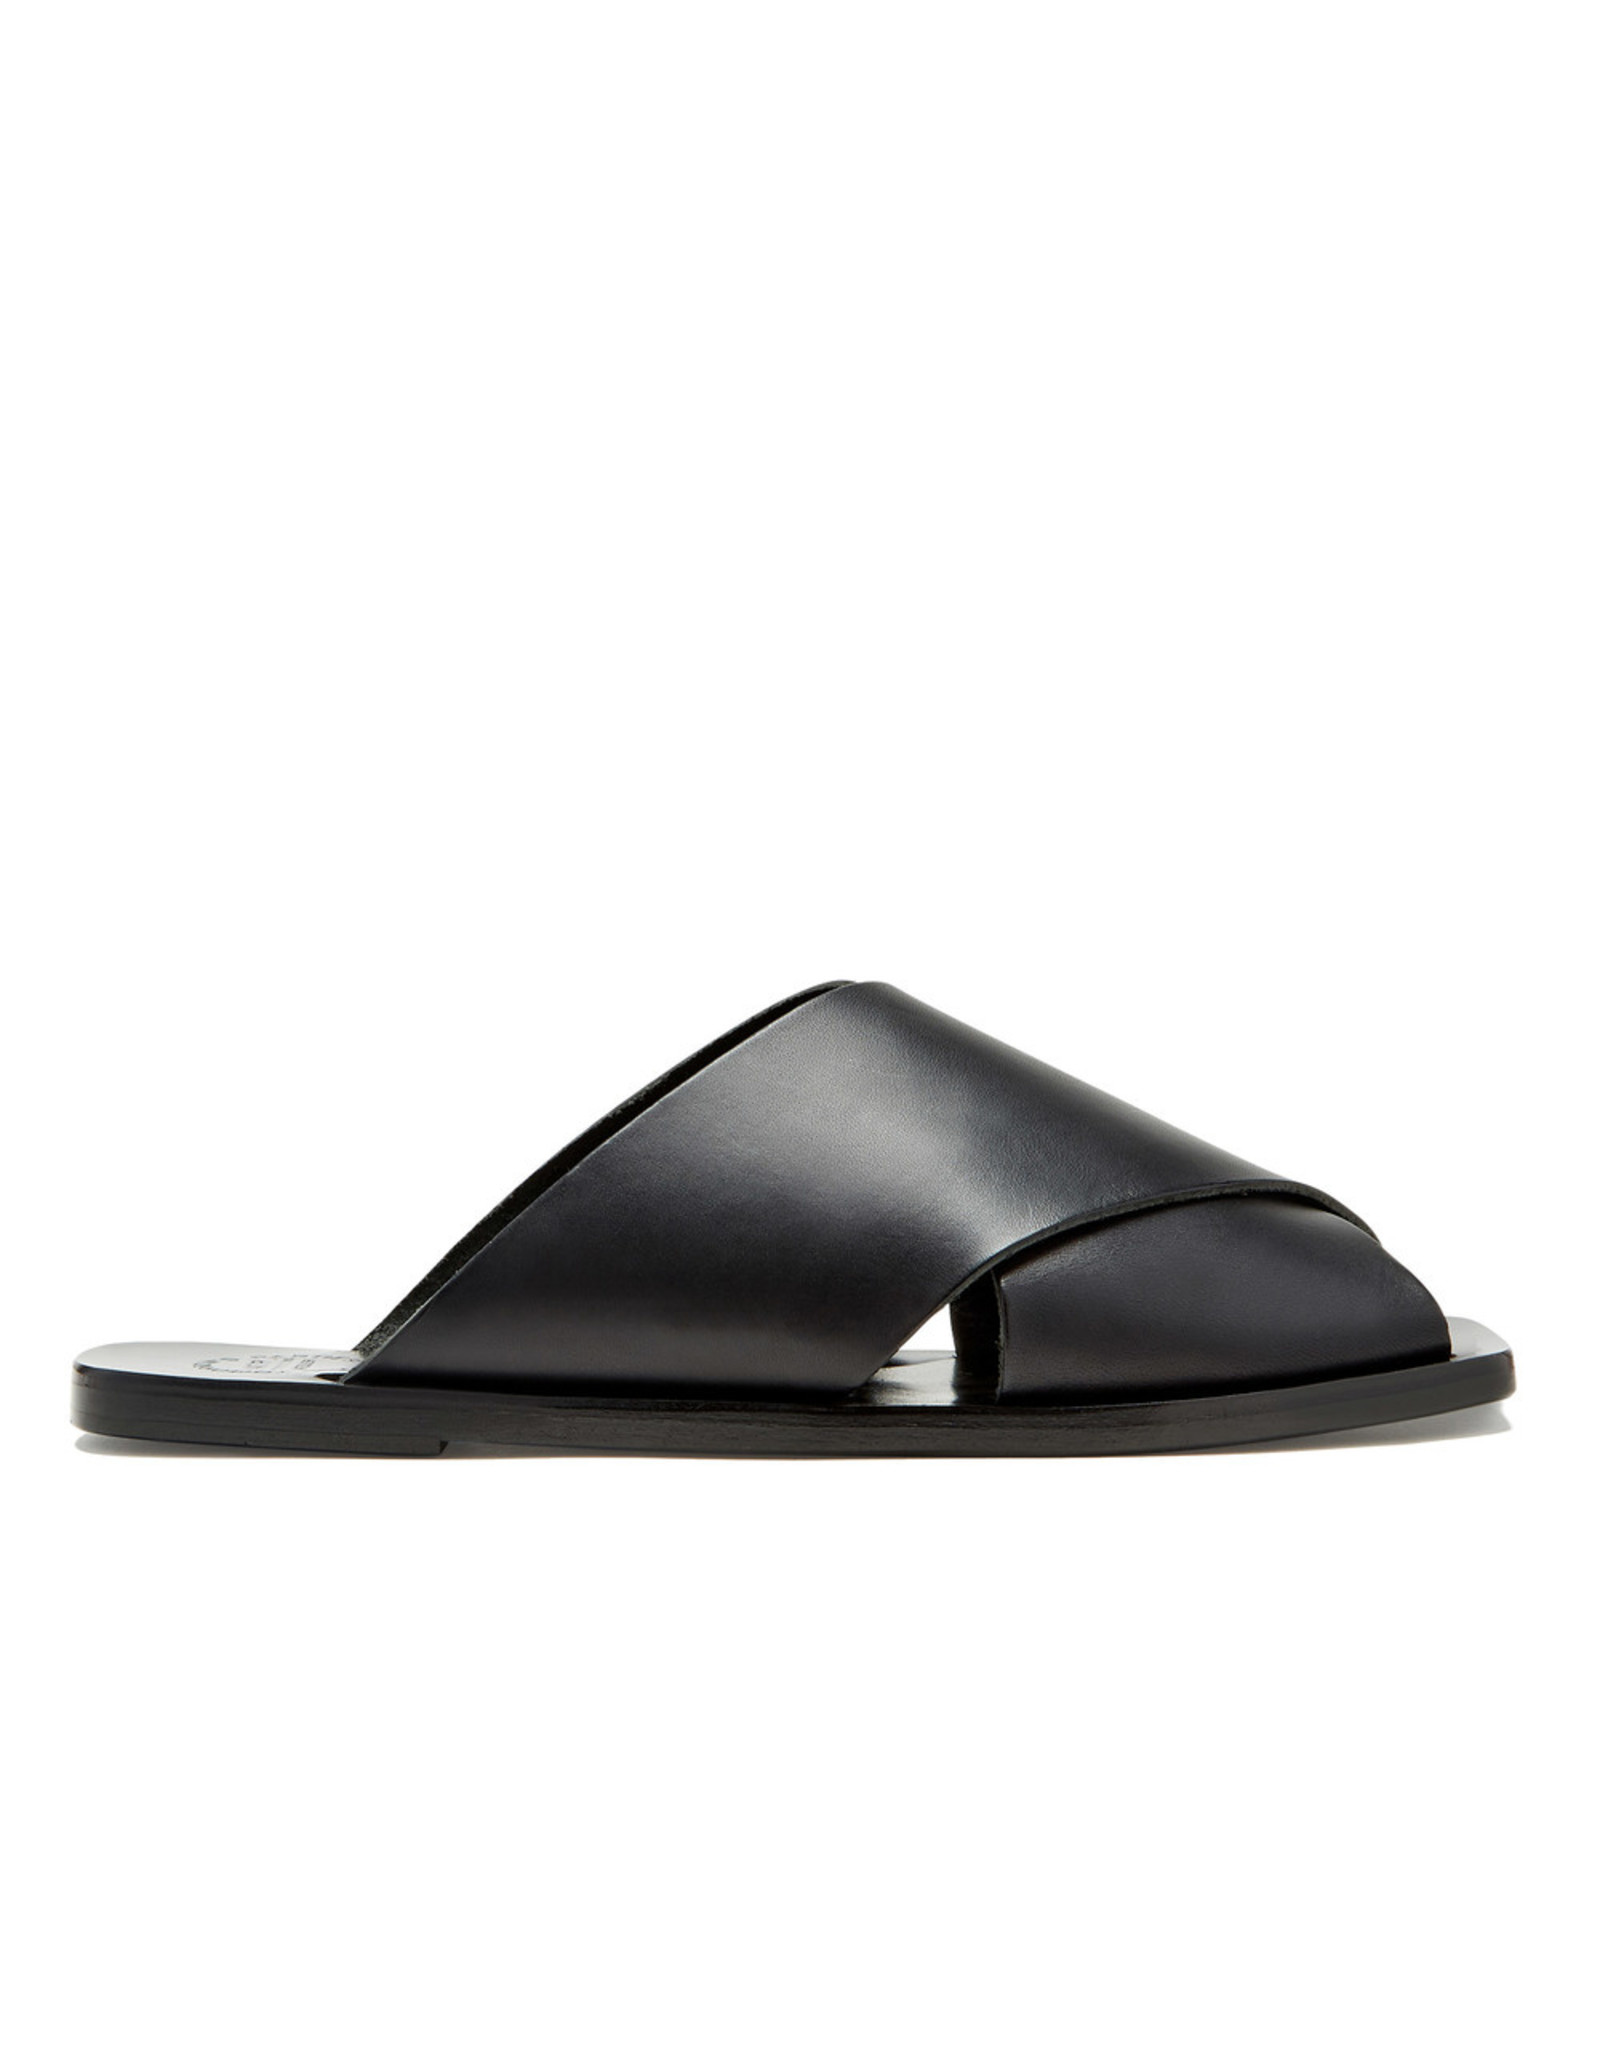 ATP Atelier ATP Atelier Alicia Sandals (Color: Black, Size: IT38)